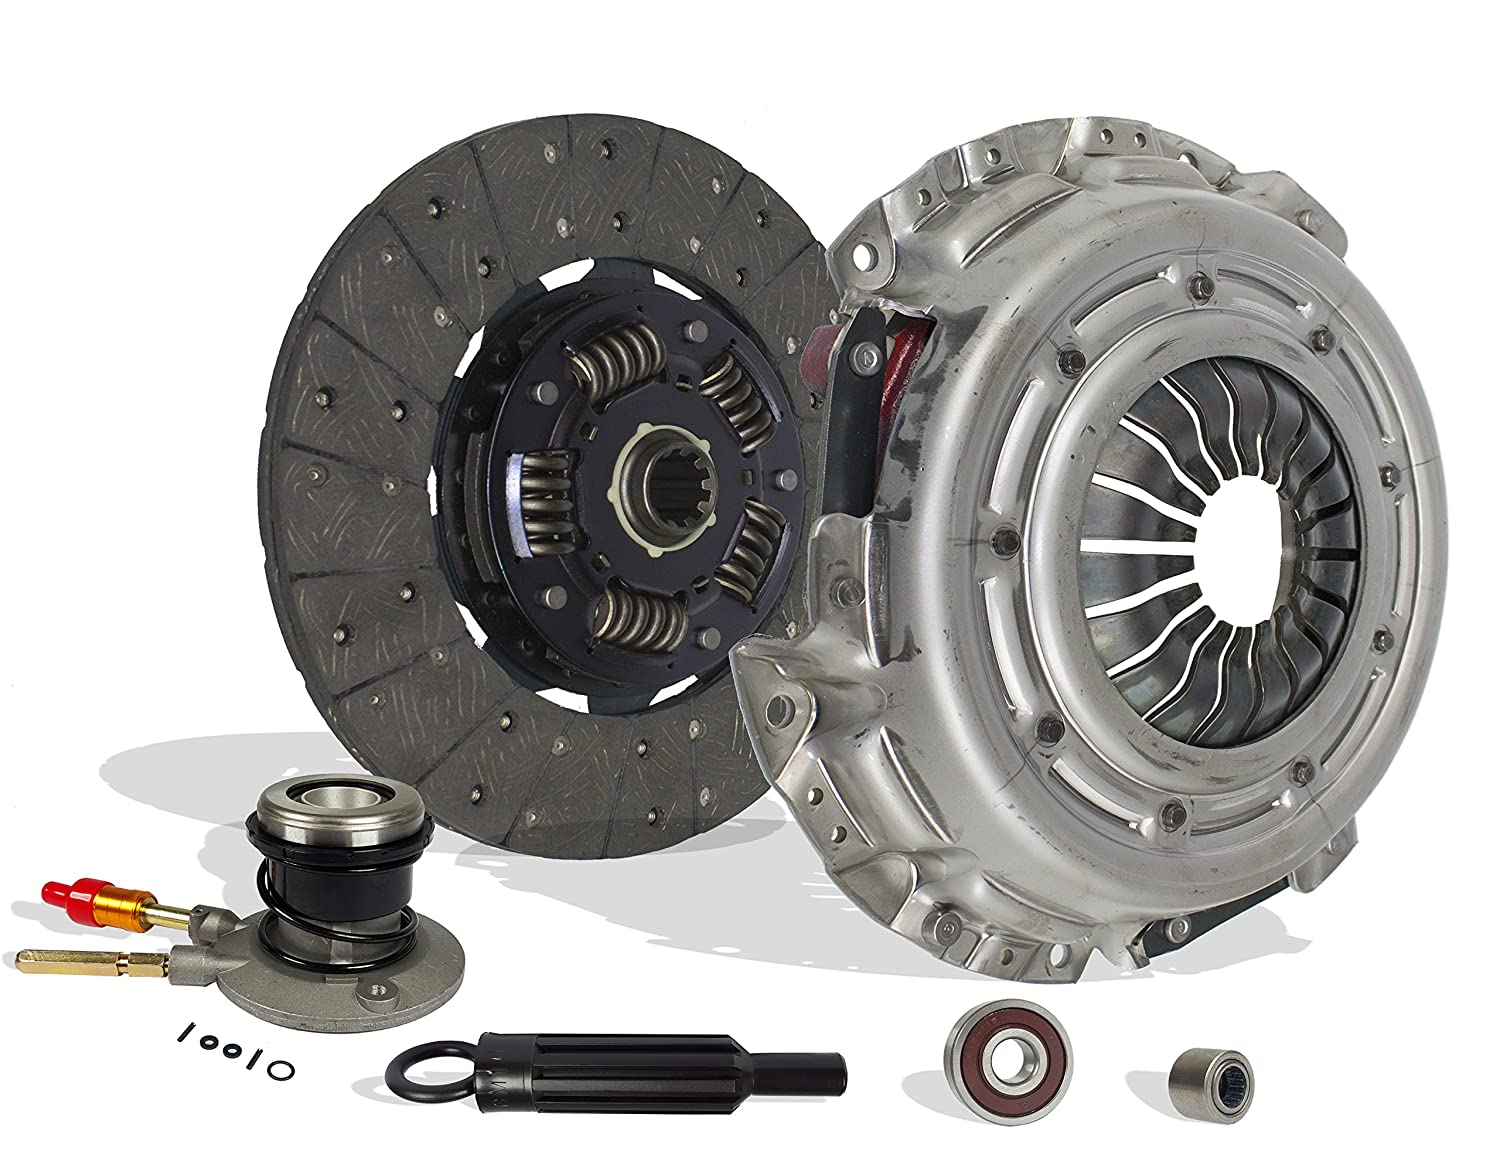 Clutch And Slave Kit Works With Chevy Silverado 1500 Gmc Sierra 1500 Base SL LS LT SLT SLE WT 1999-2002 4.3L V6 GAS OHV Naturally Aspirated (OD: 11; ...